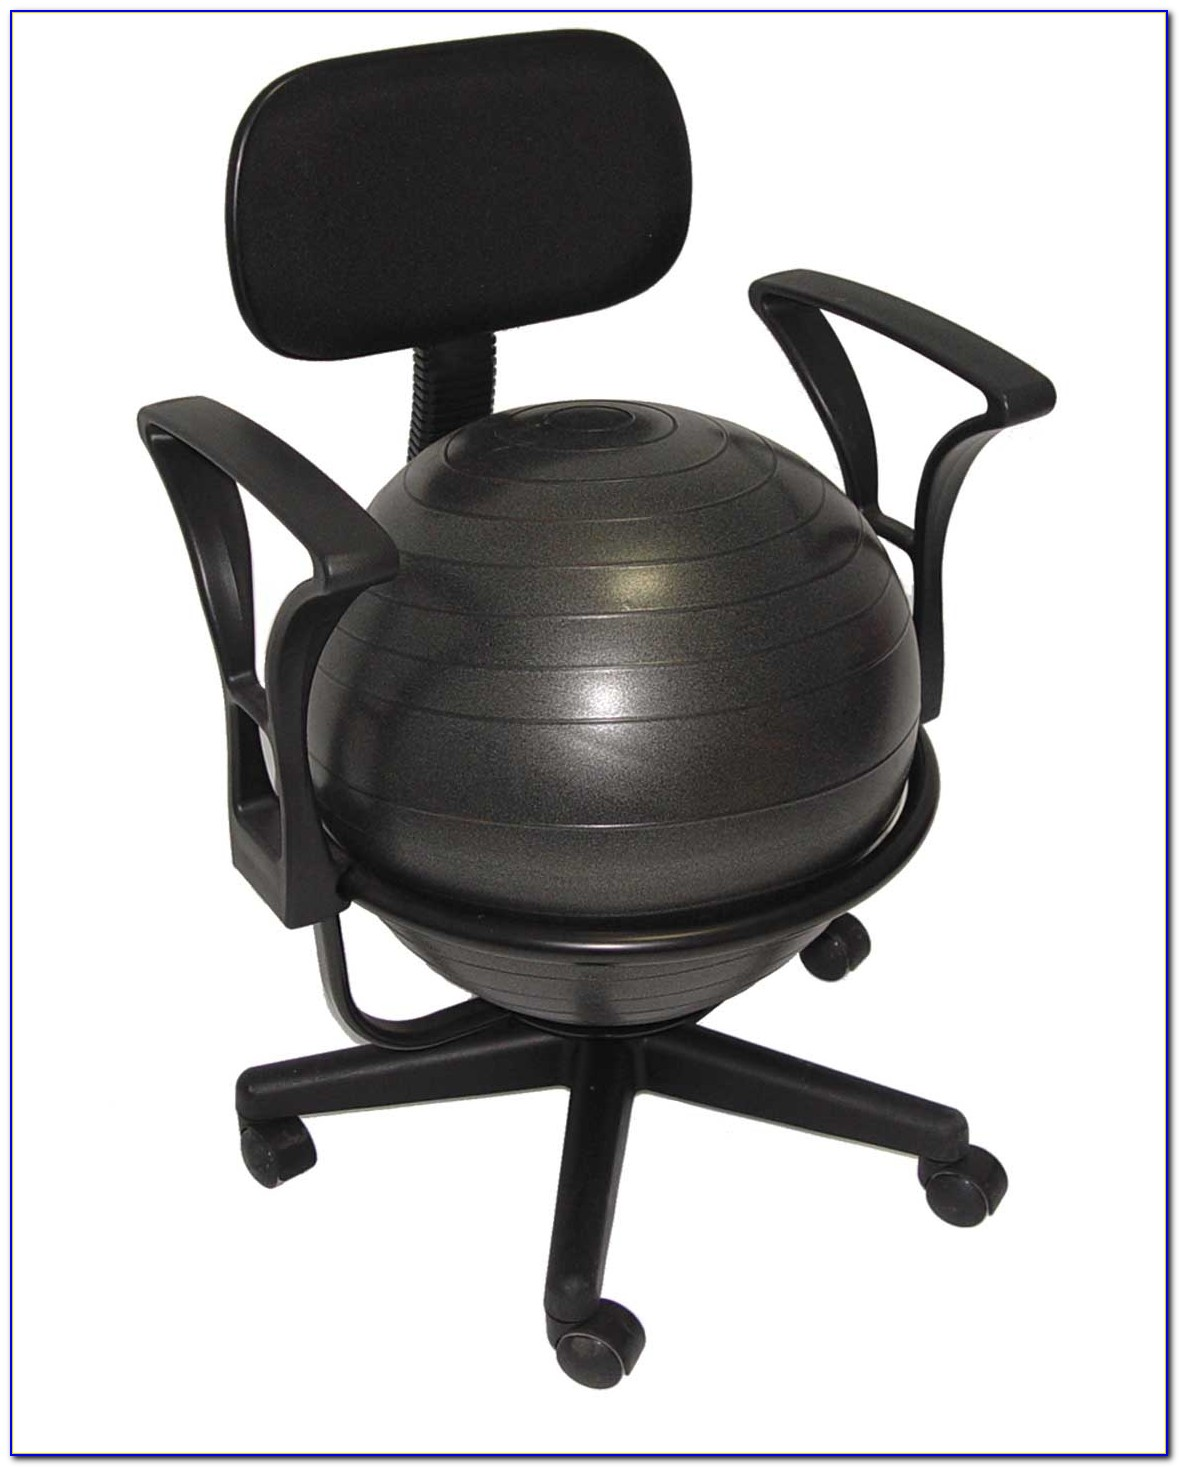 What Size Stability Ball For Desk Chair